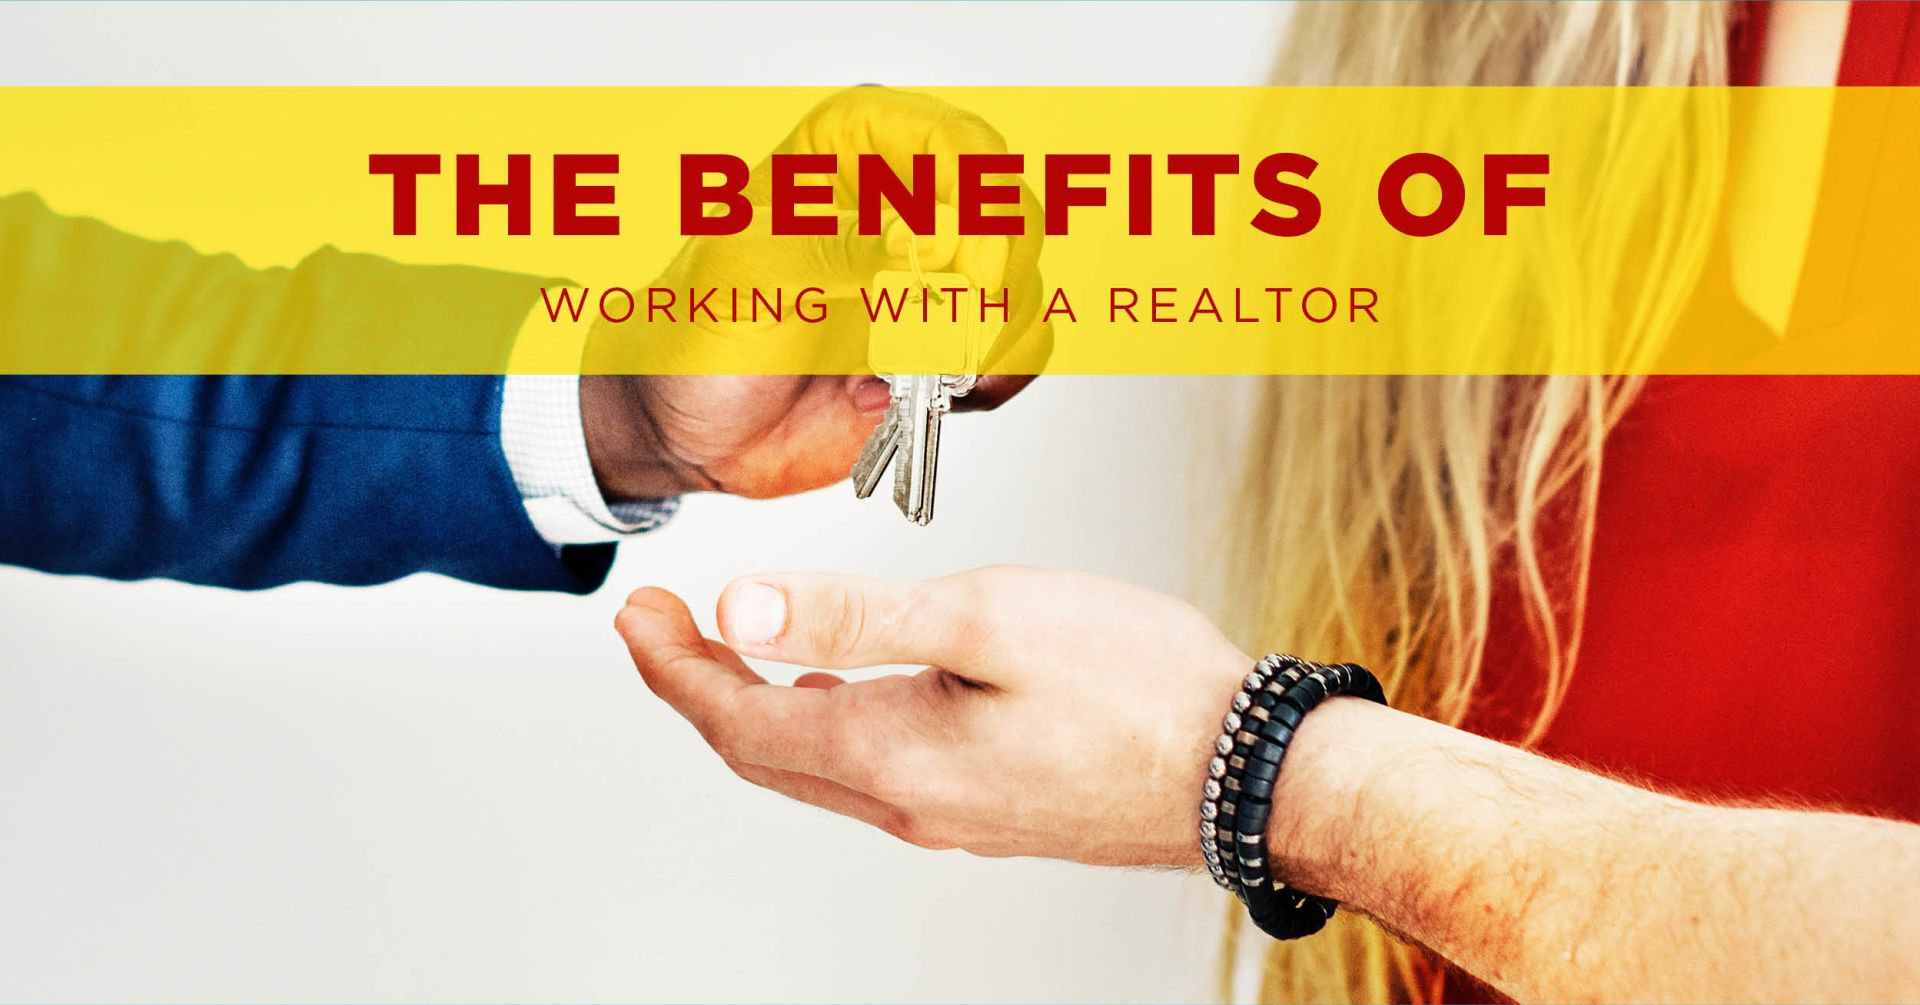 The Benefits Of Working With A Realtor